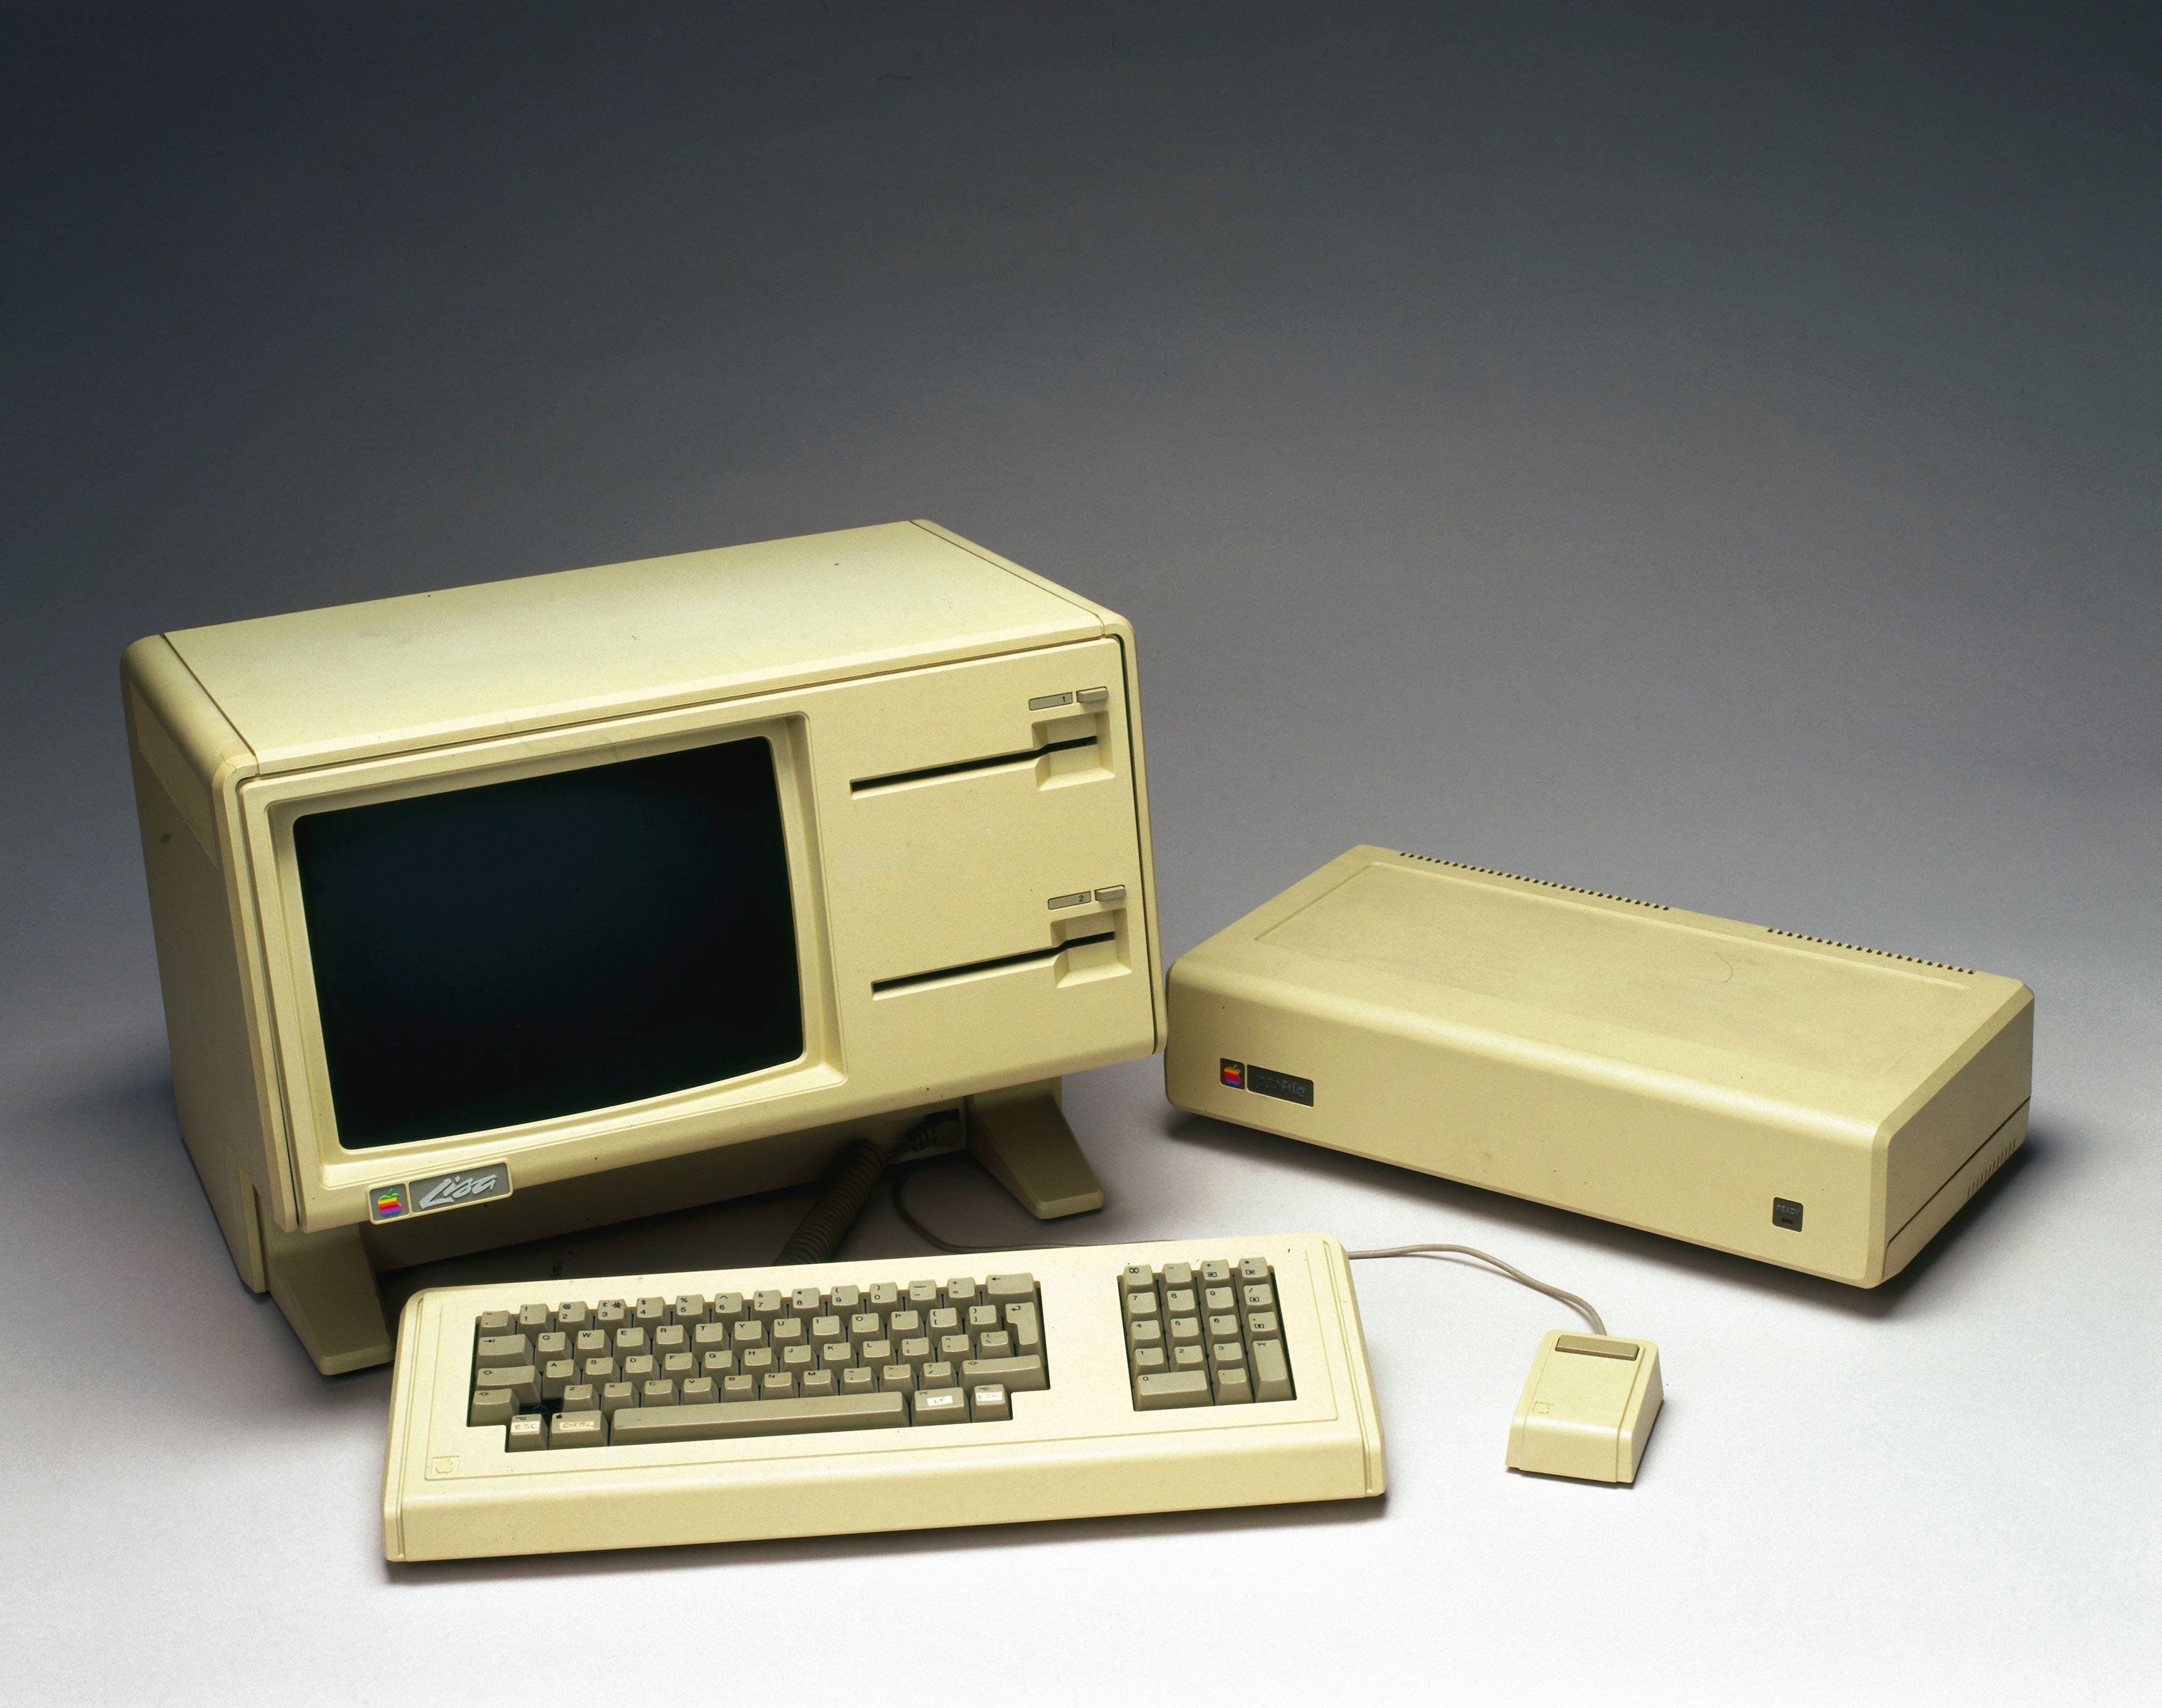 Tech Hunters: Time Travelling Back To Apple's Early